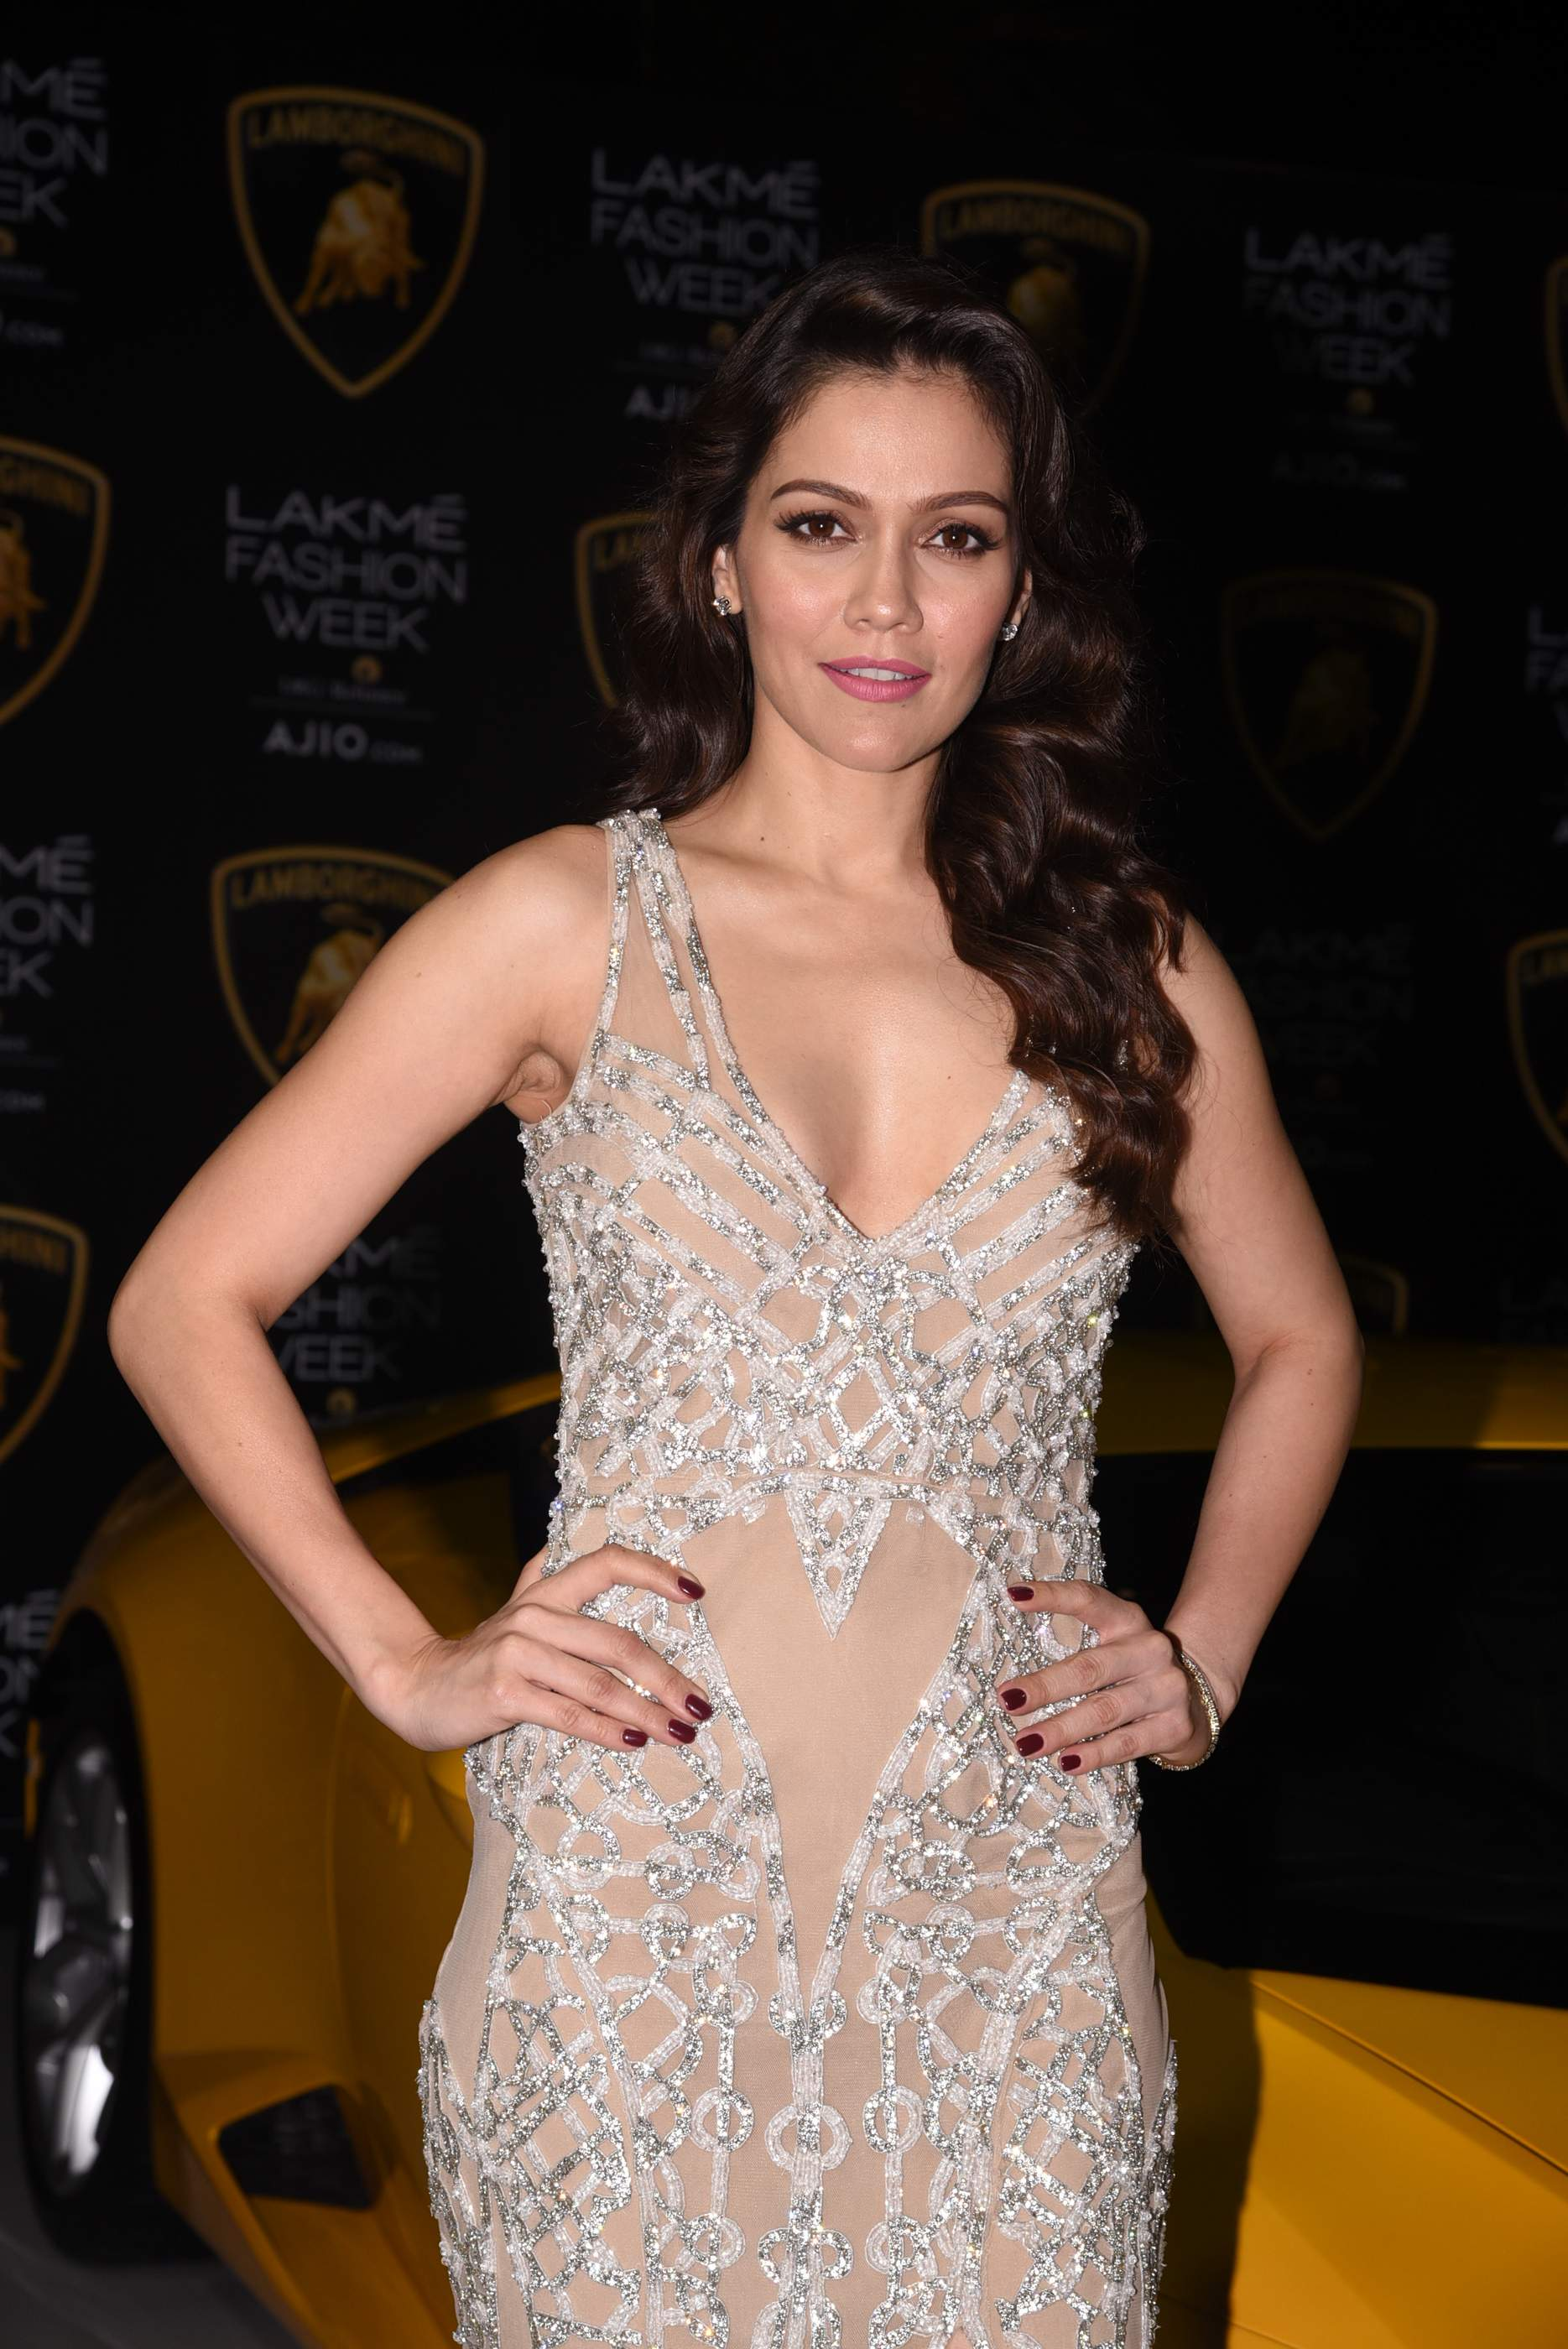 Sexiest Photo Stills Of Hot Actresses From Flash Fashion Event | Models